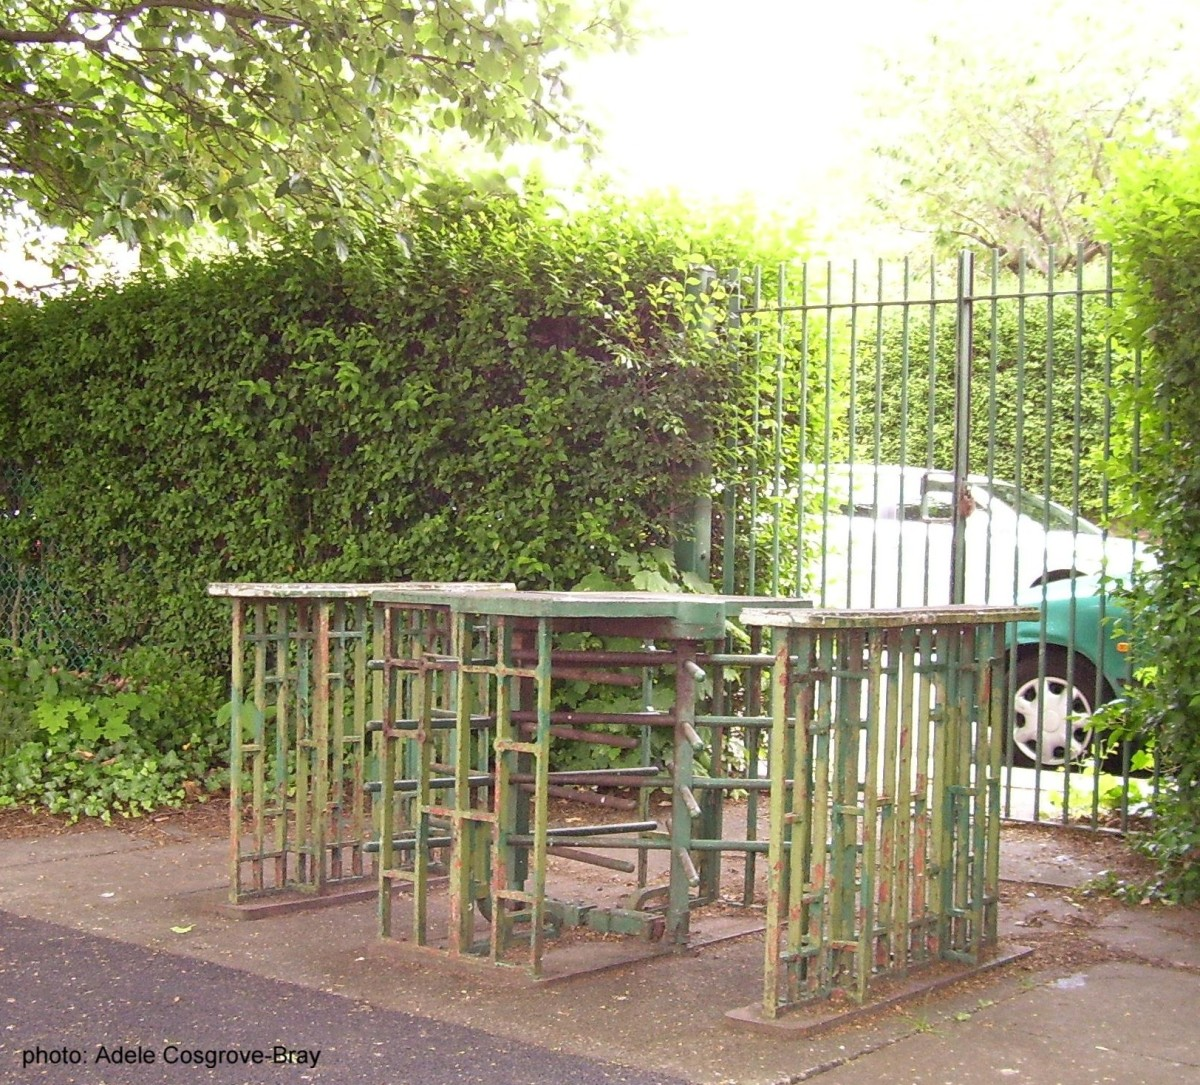 Turnstile, from the days when people paid a fee to enter Ashton Park.